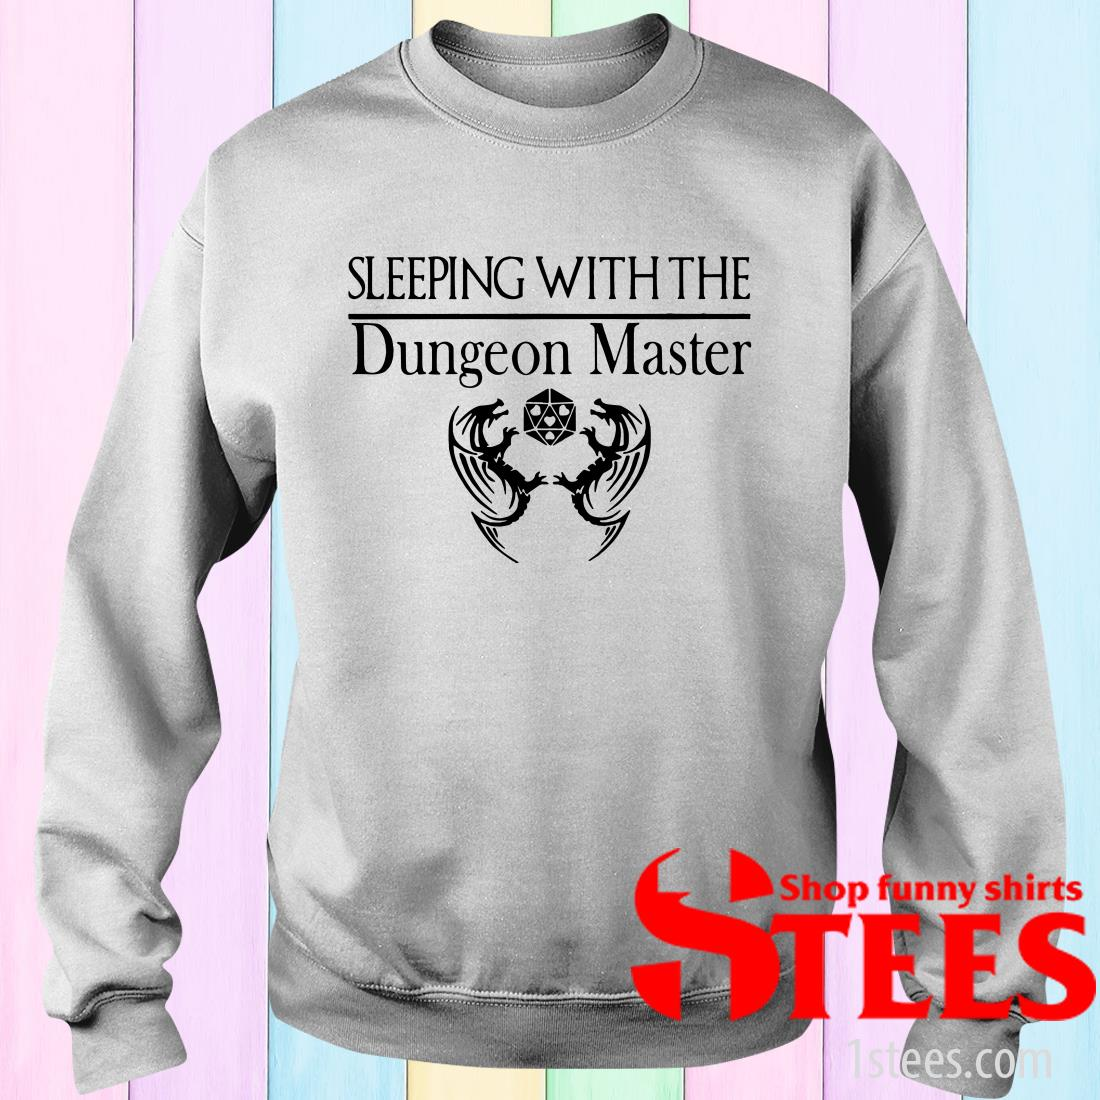 Sleeping With The Dungeon Master T-Shirt